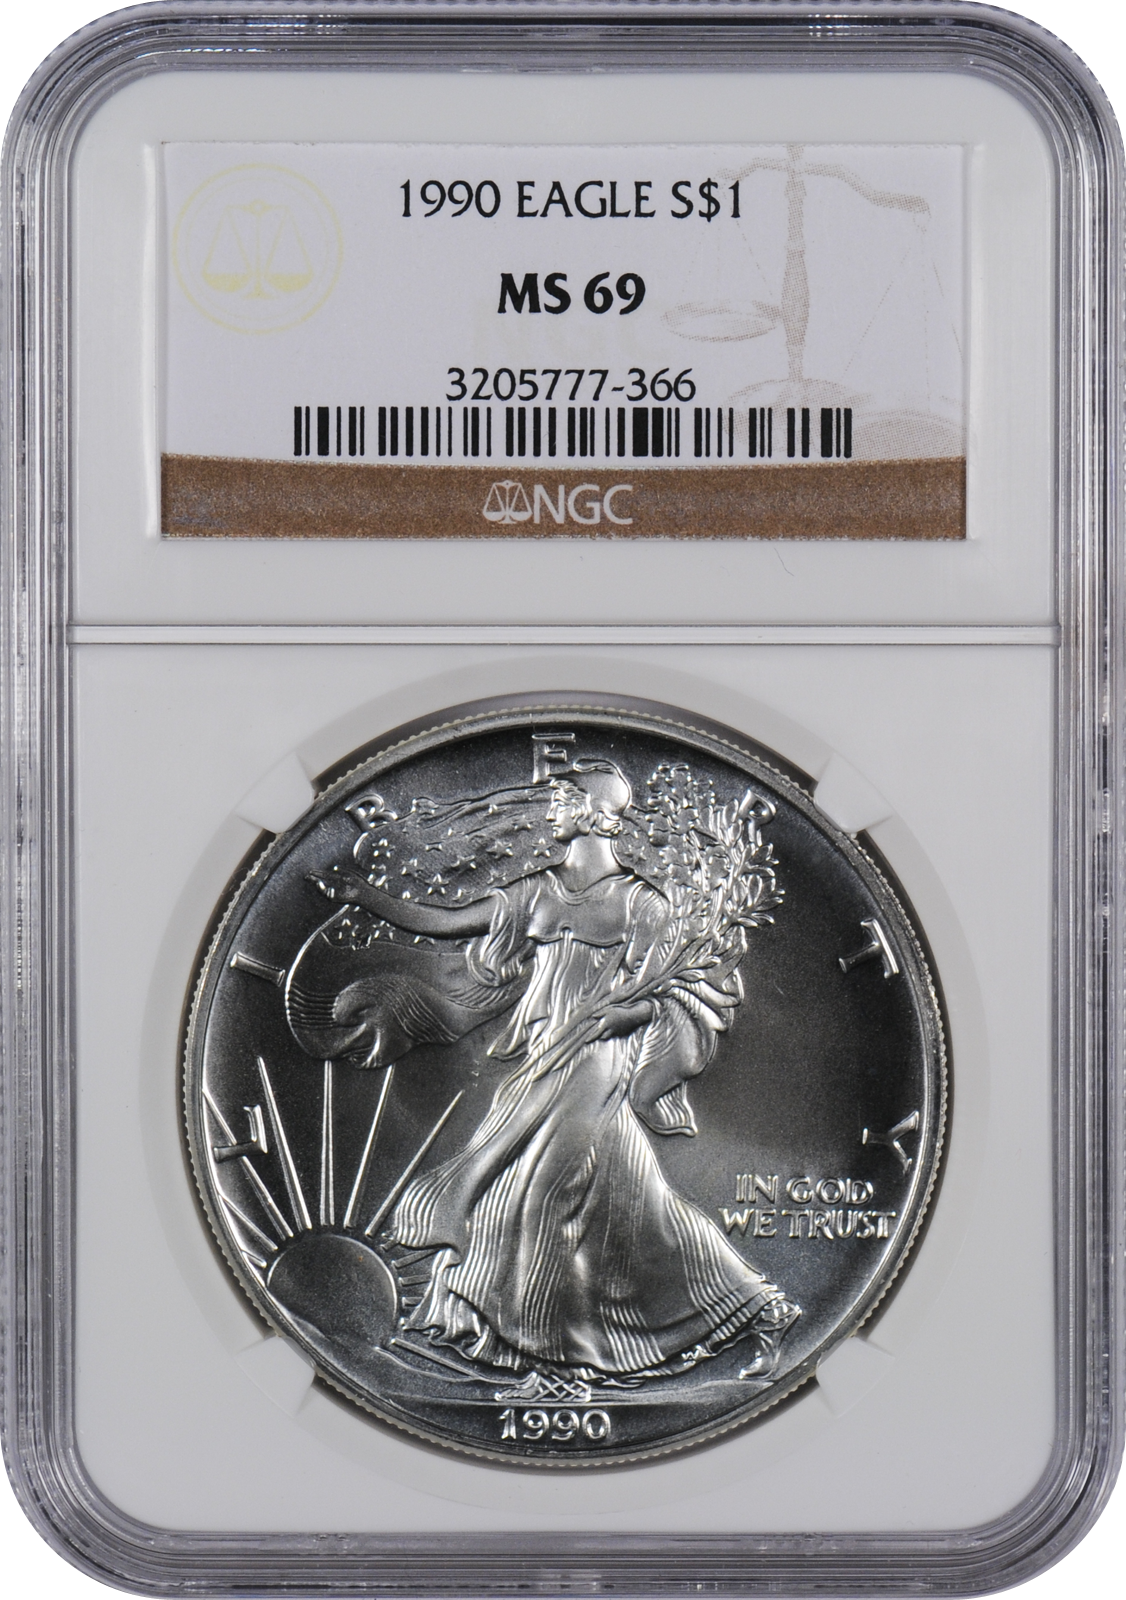 This 1990 Silver Eagle Ms69 Is A Popular Coin For Investors And Collectors Alike This Coin Has A Face Value Of One Us Dollar Eac Eagle Coin Half Dollar Coin